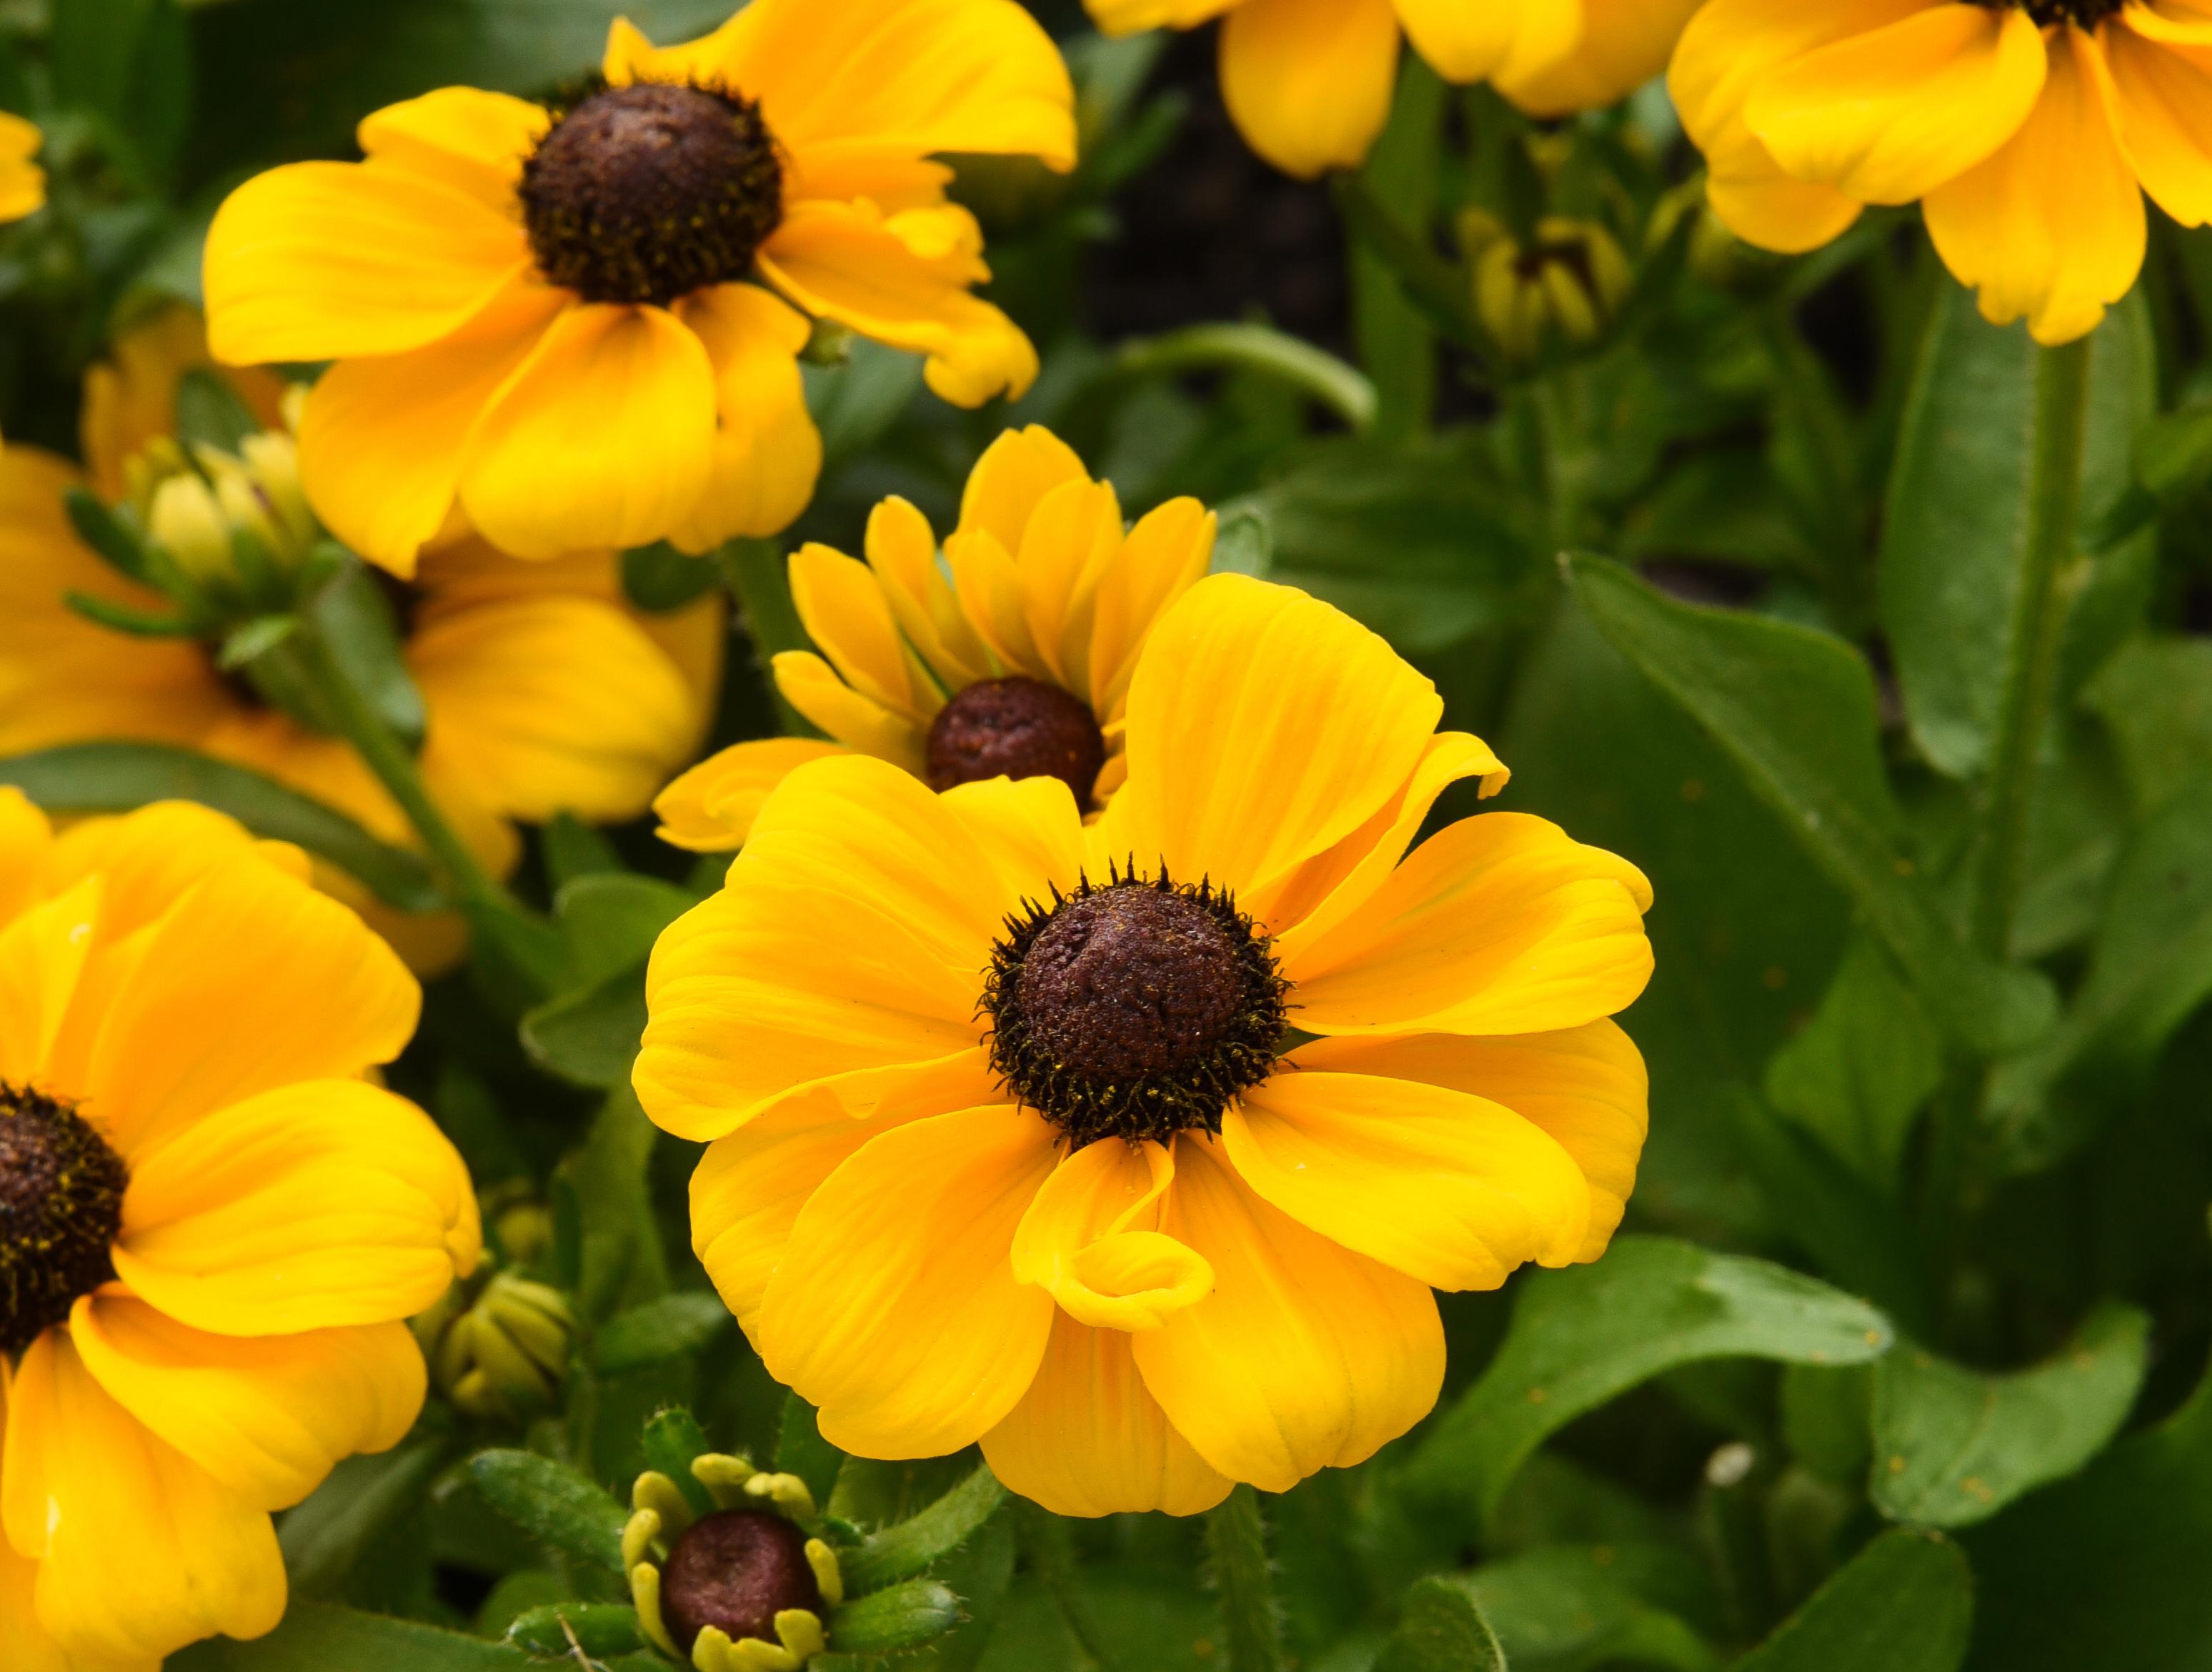 Rudbeckia hirta 'Toto' from T&M